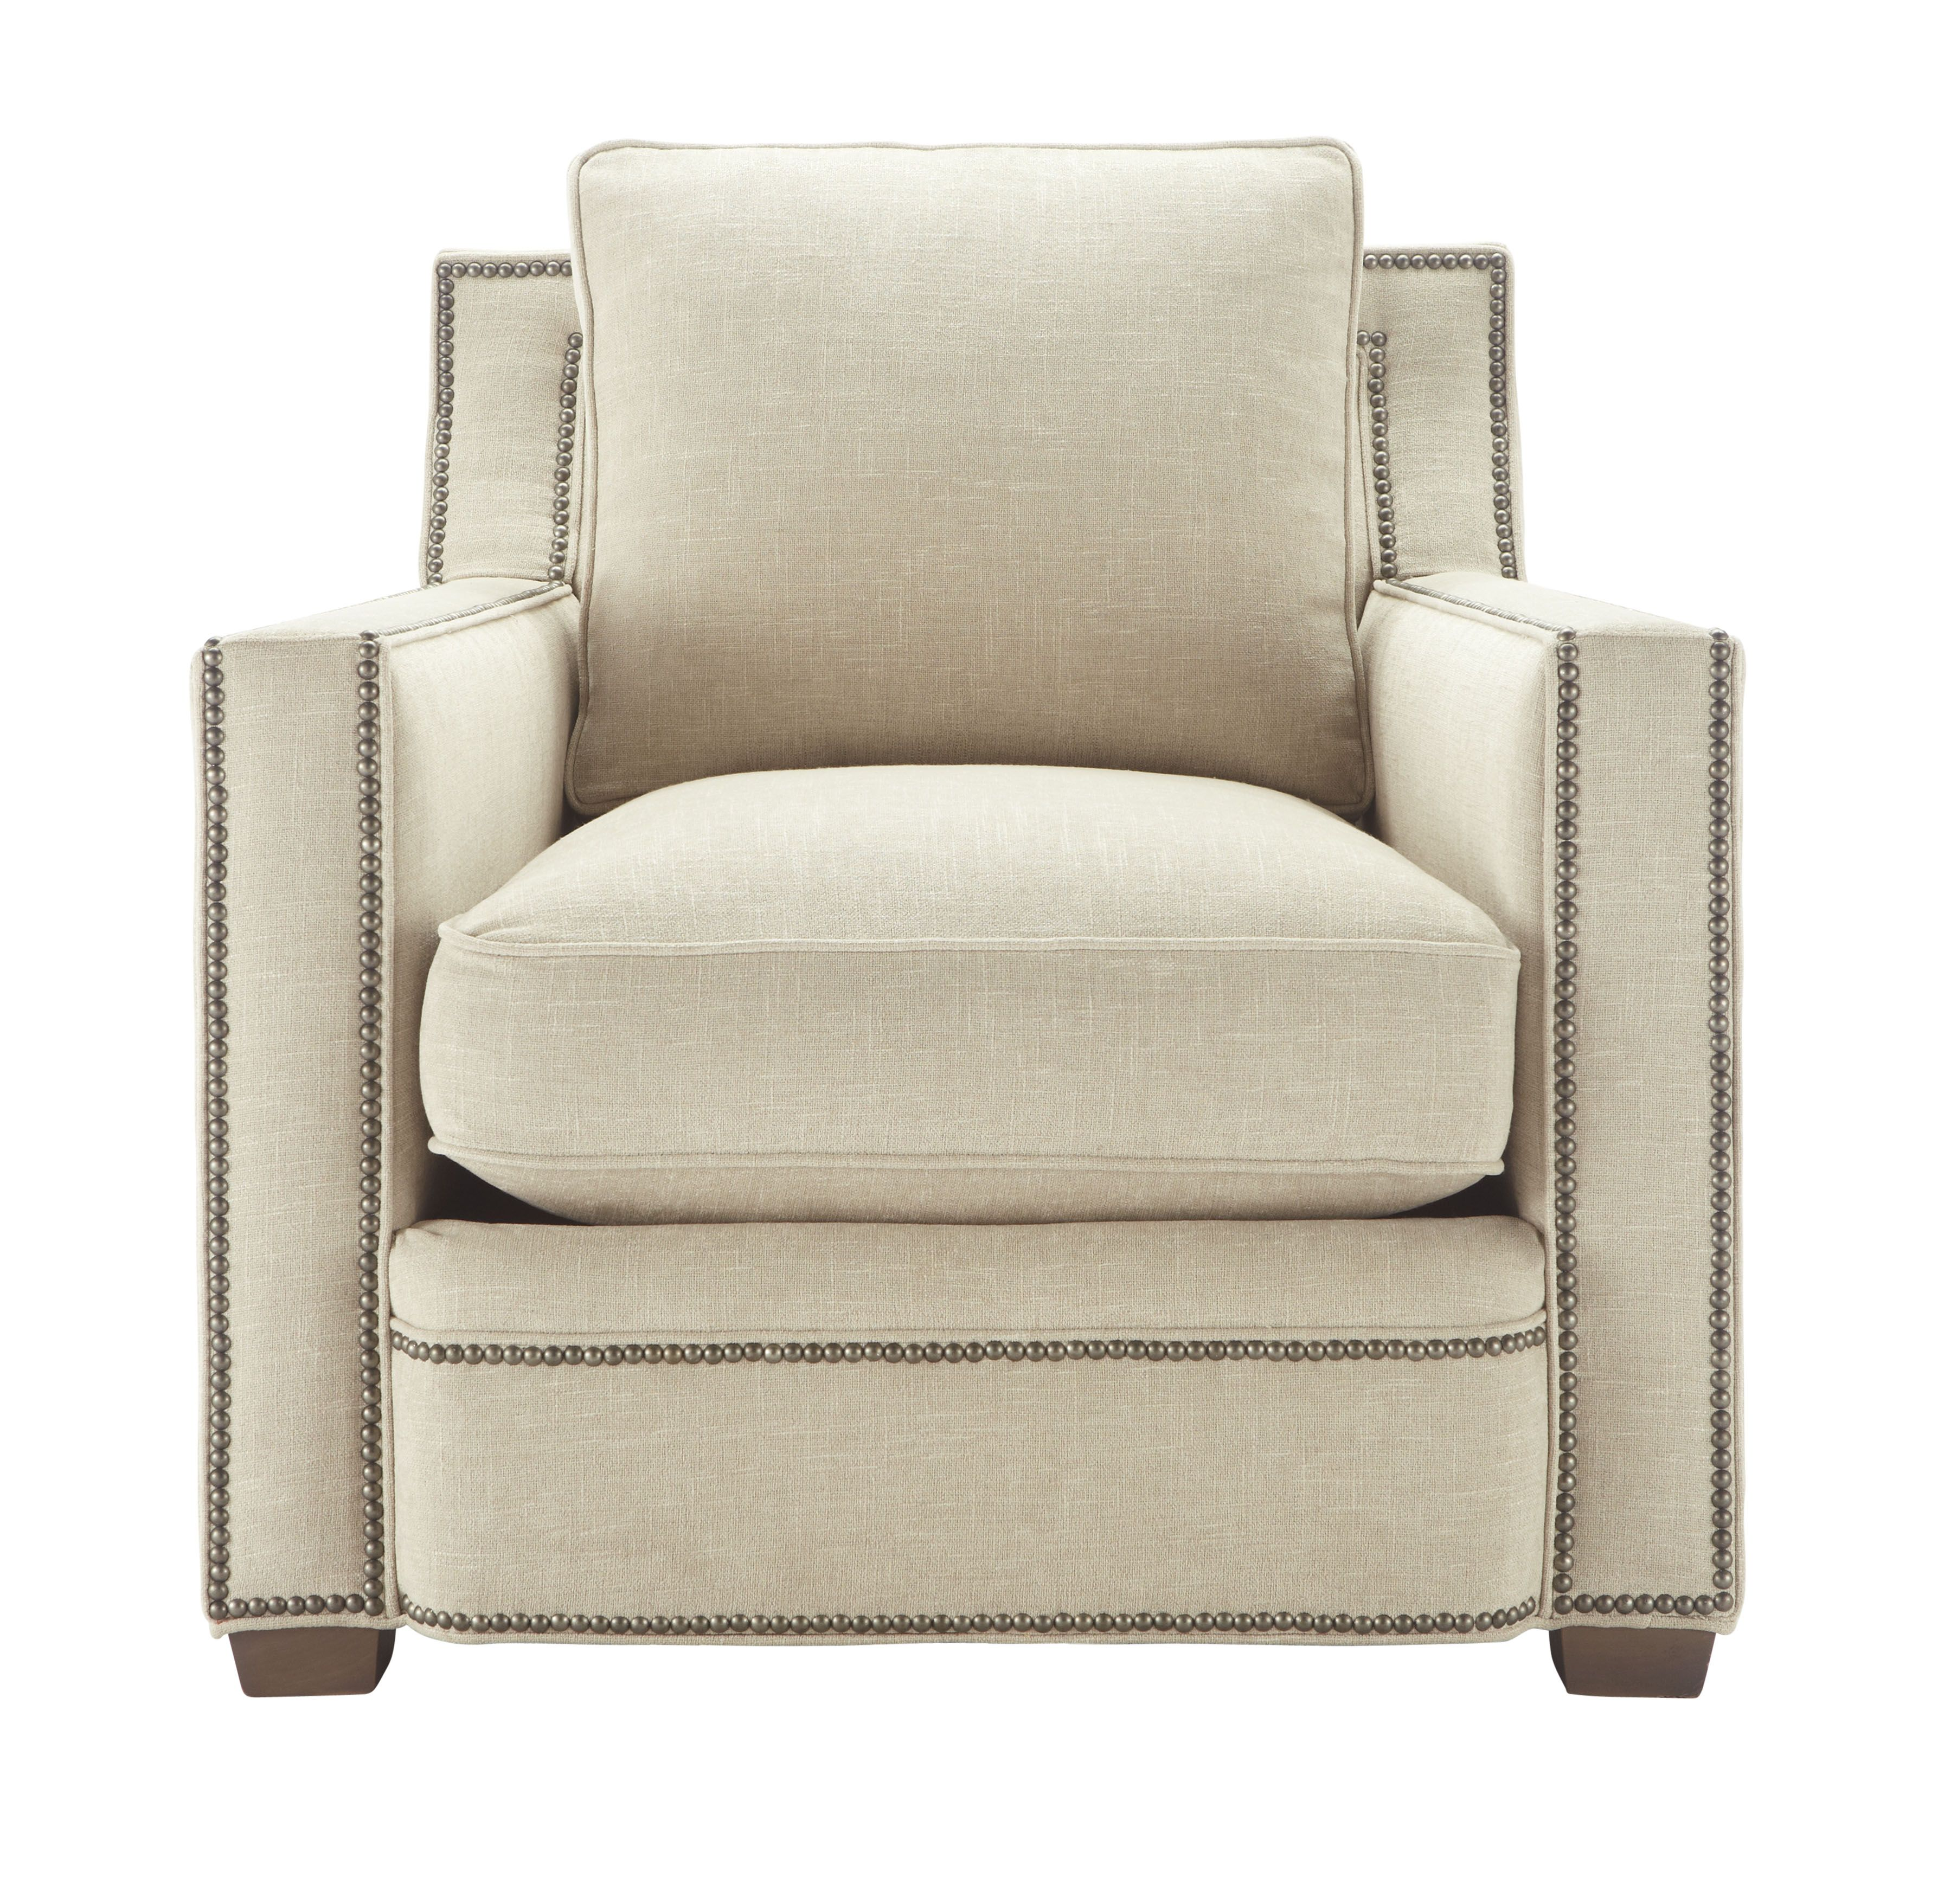 The Nailhead Trend. The Trent Upholstery Collection. Arhaus